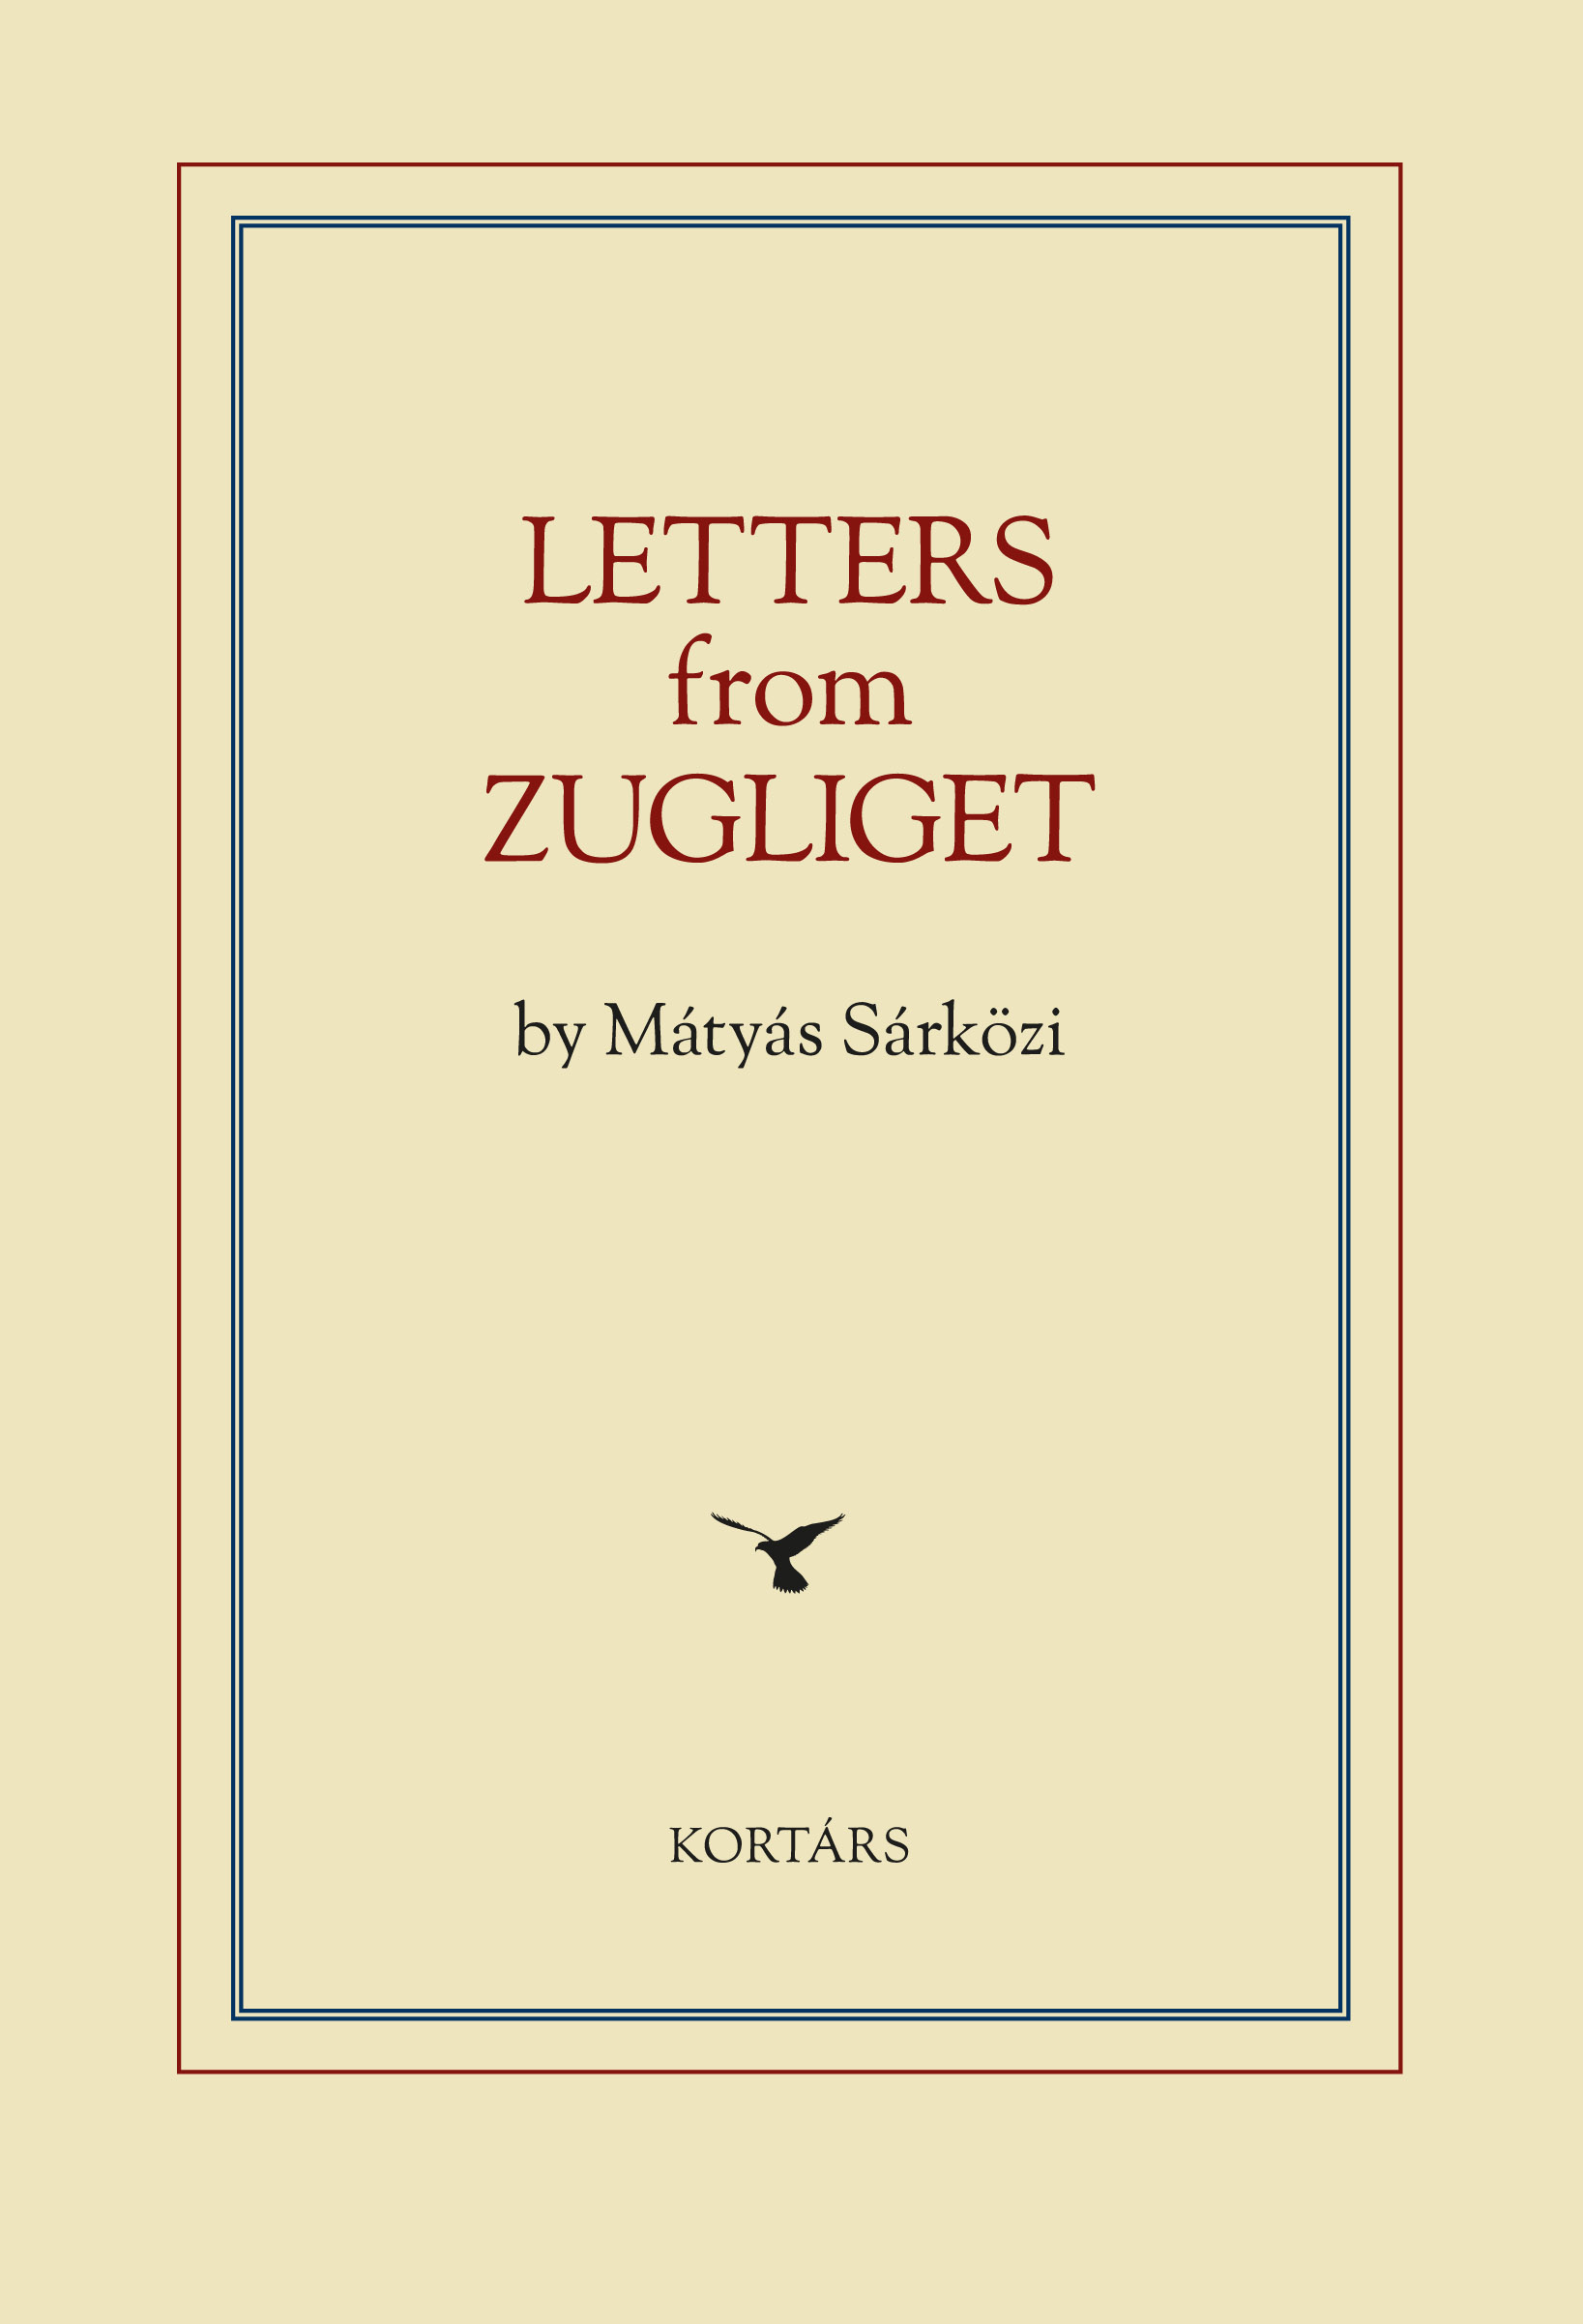 Letters from Zugliget